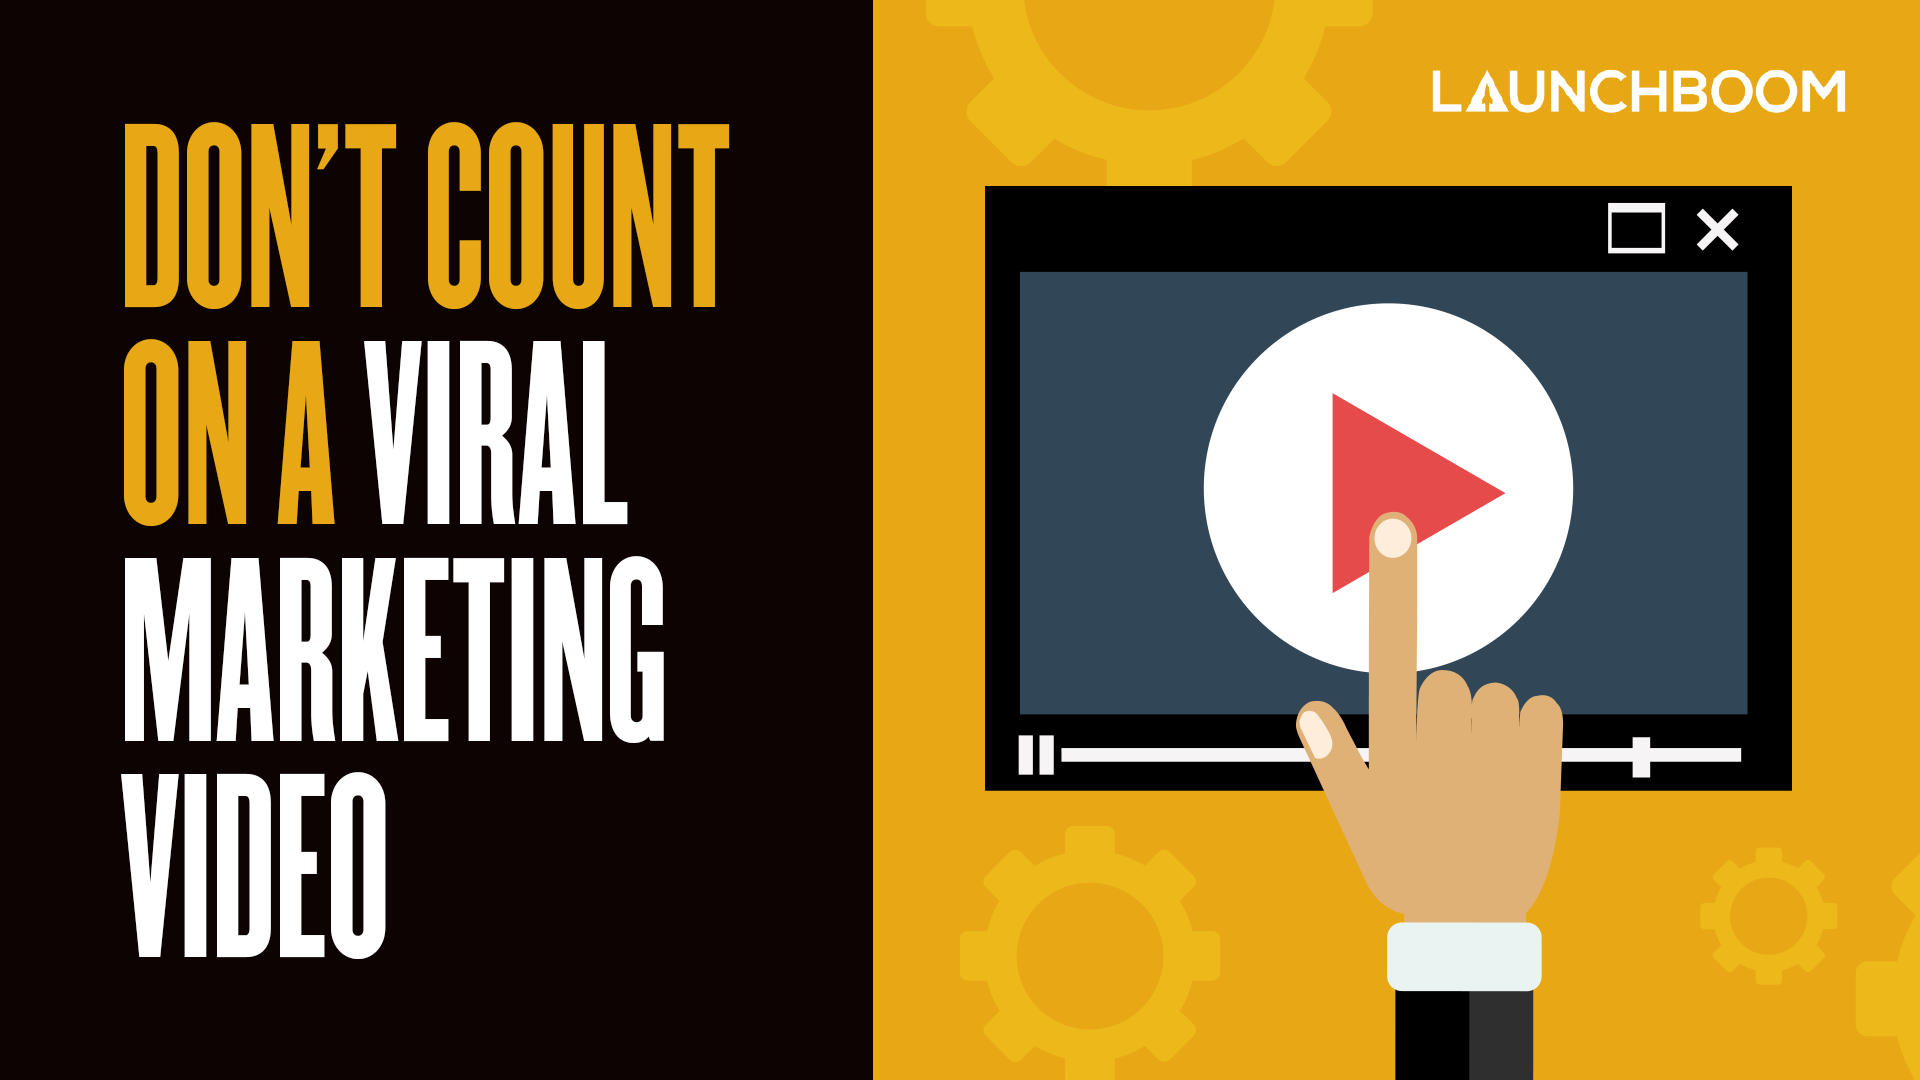 Don't count on a viral marketing video